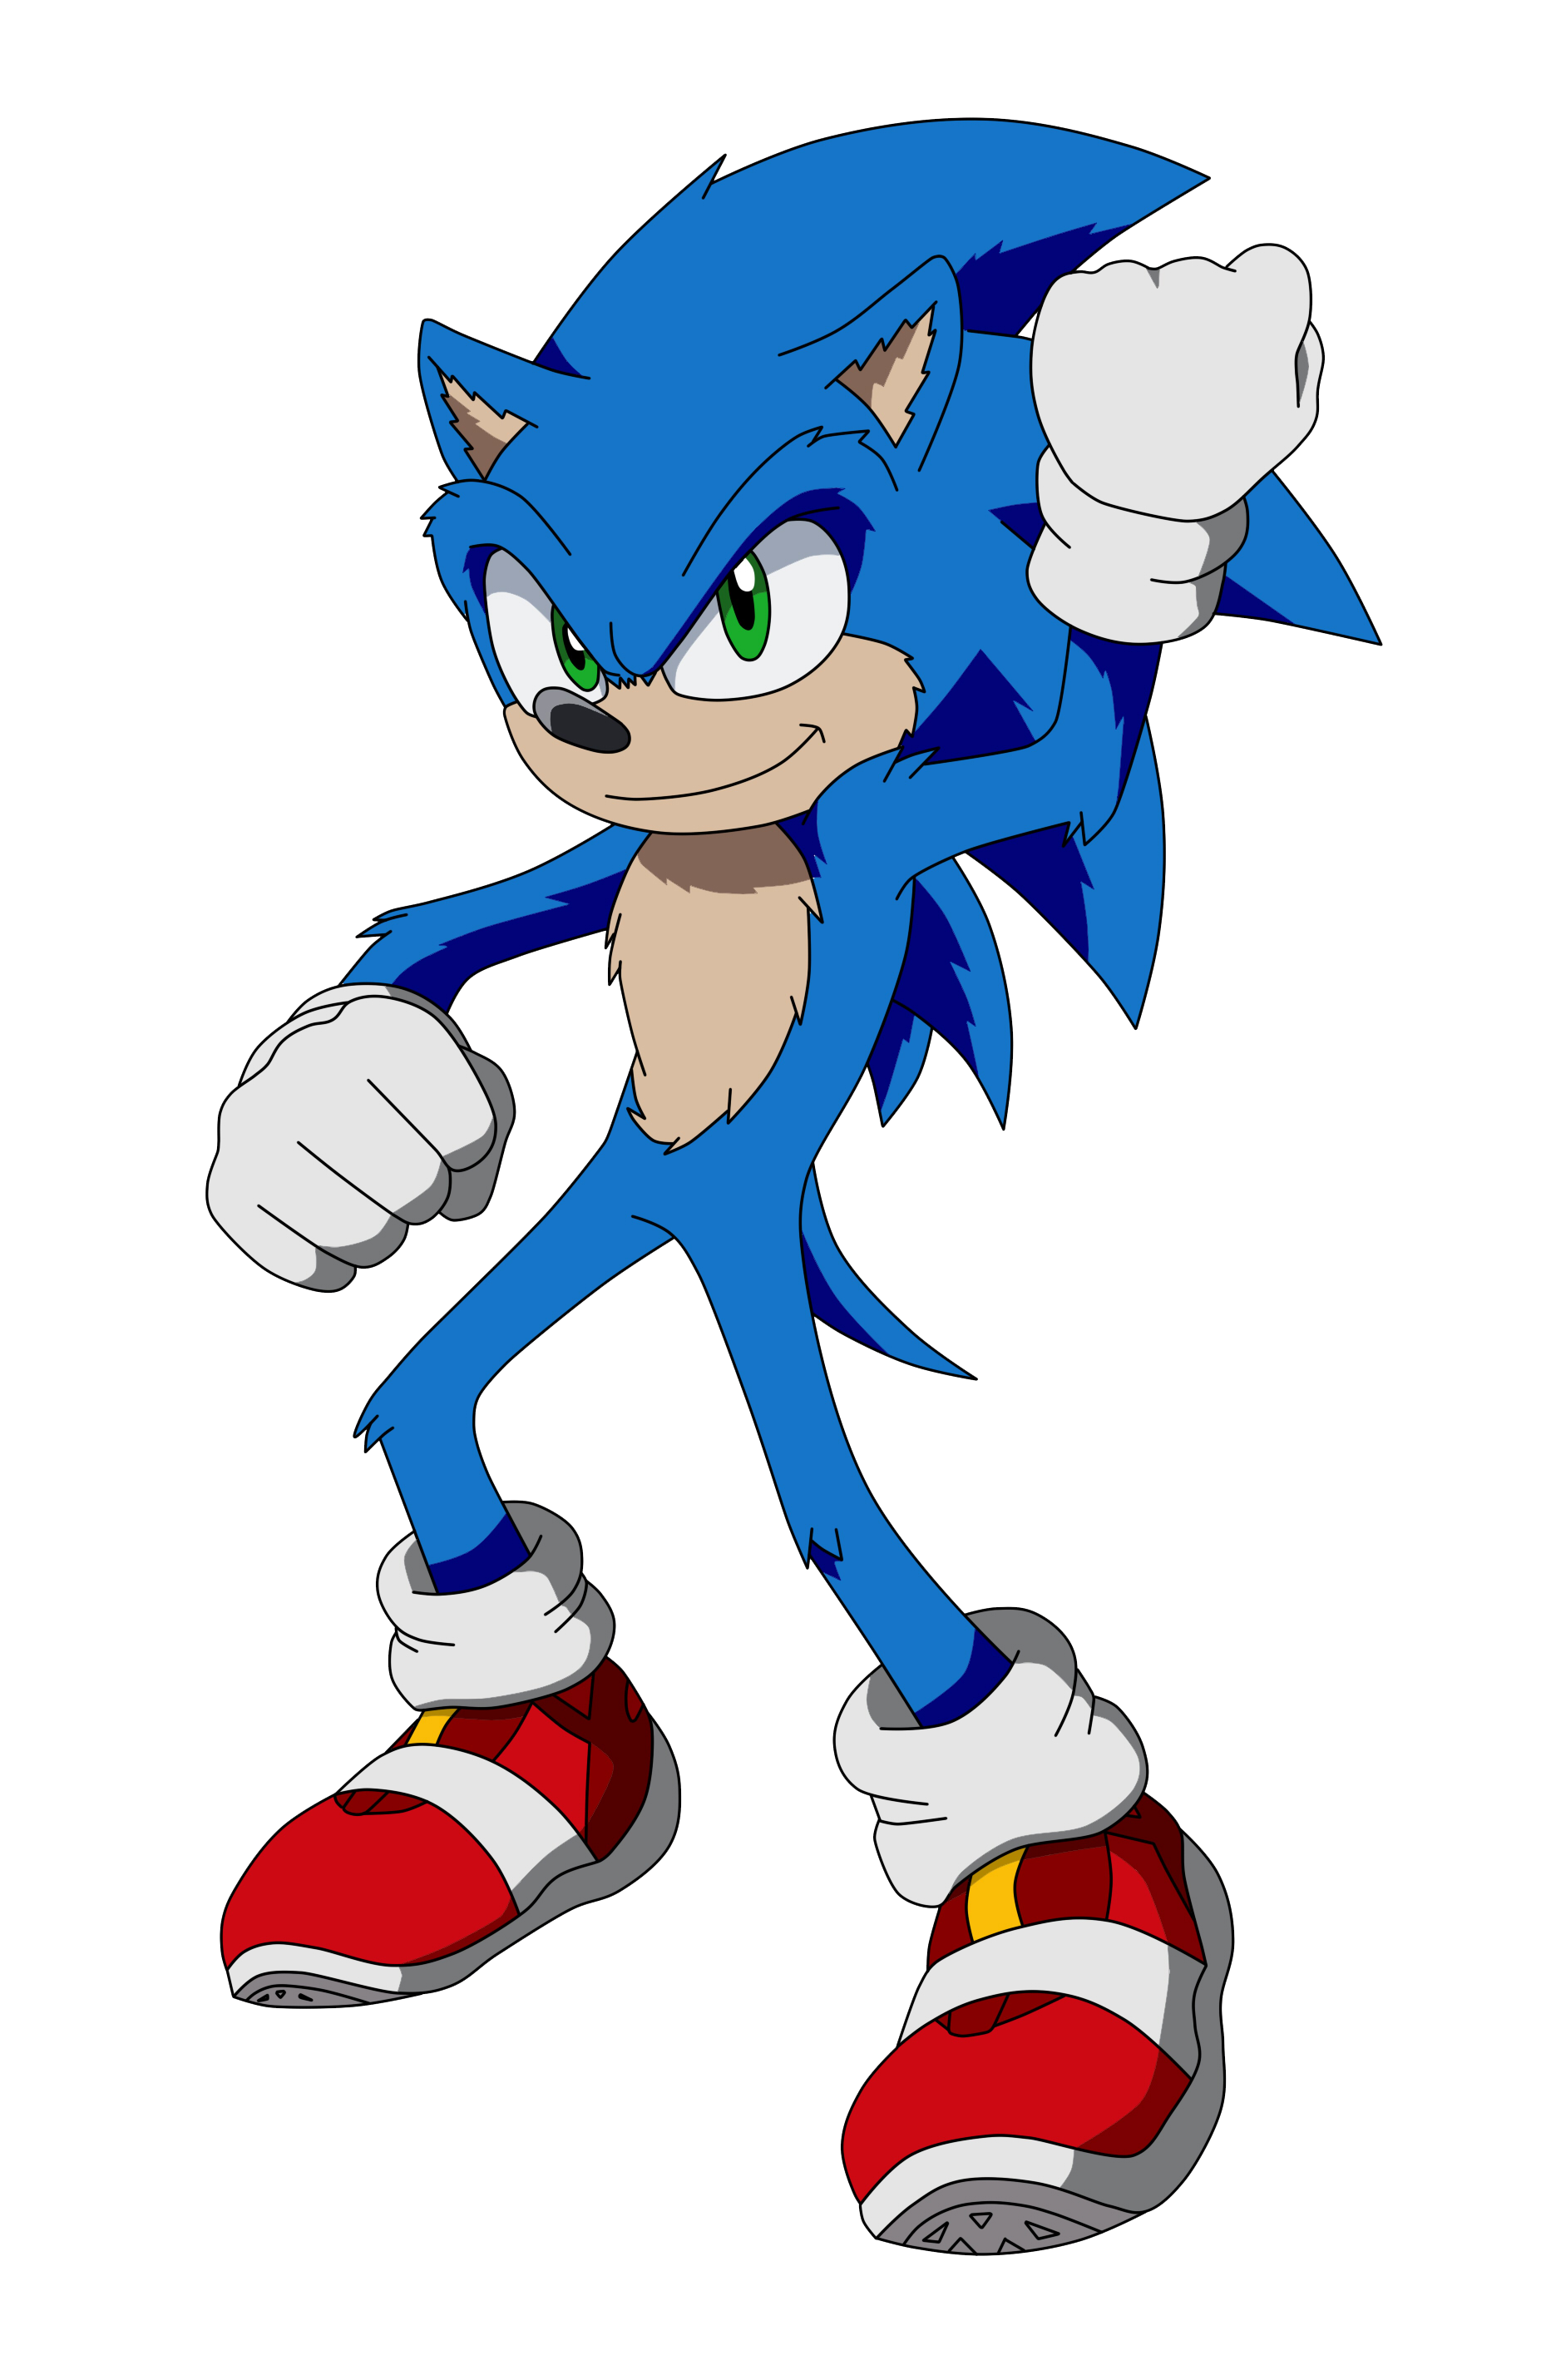 Sonic Movie By Artsonx On Deviantart In 2020 Sonic Sonic The Movie Sonic Fan Art